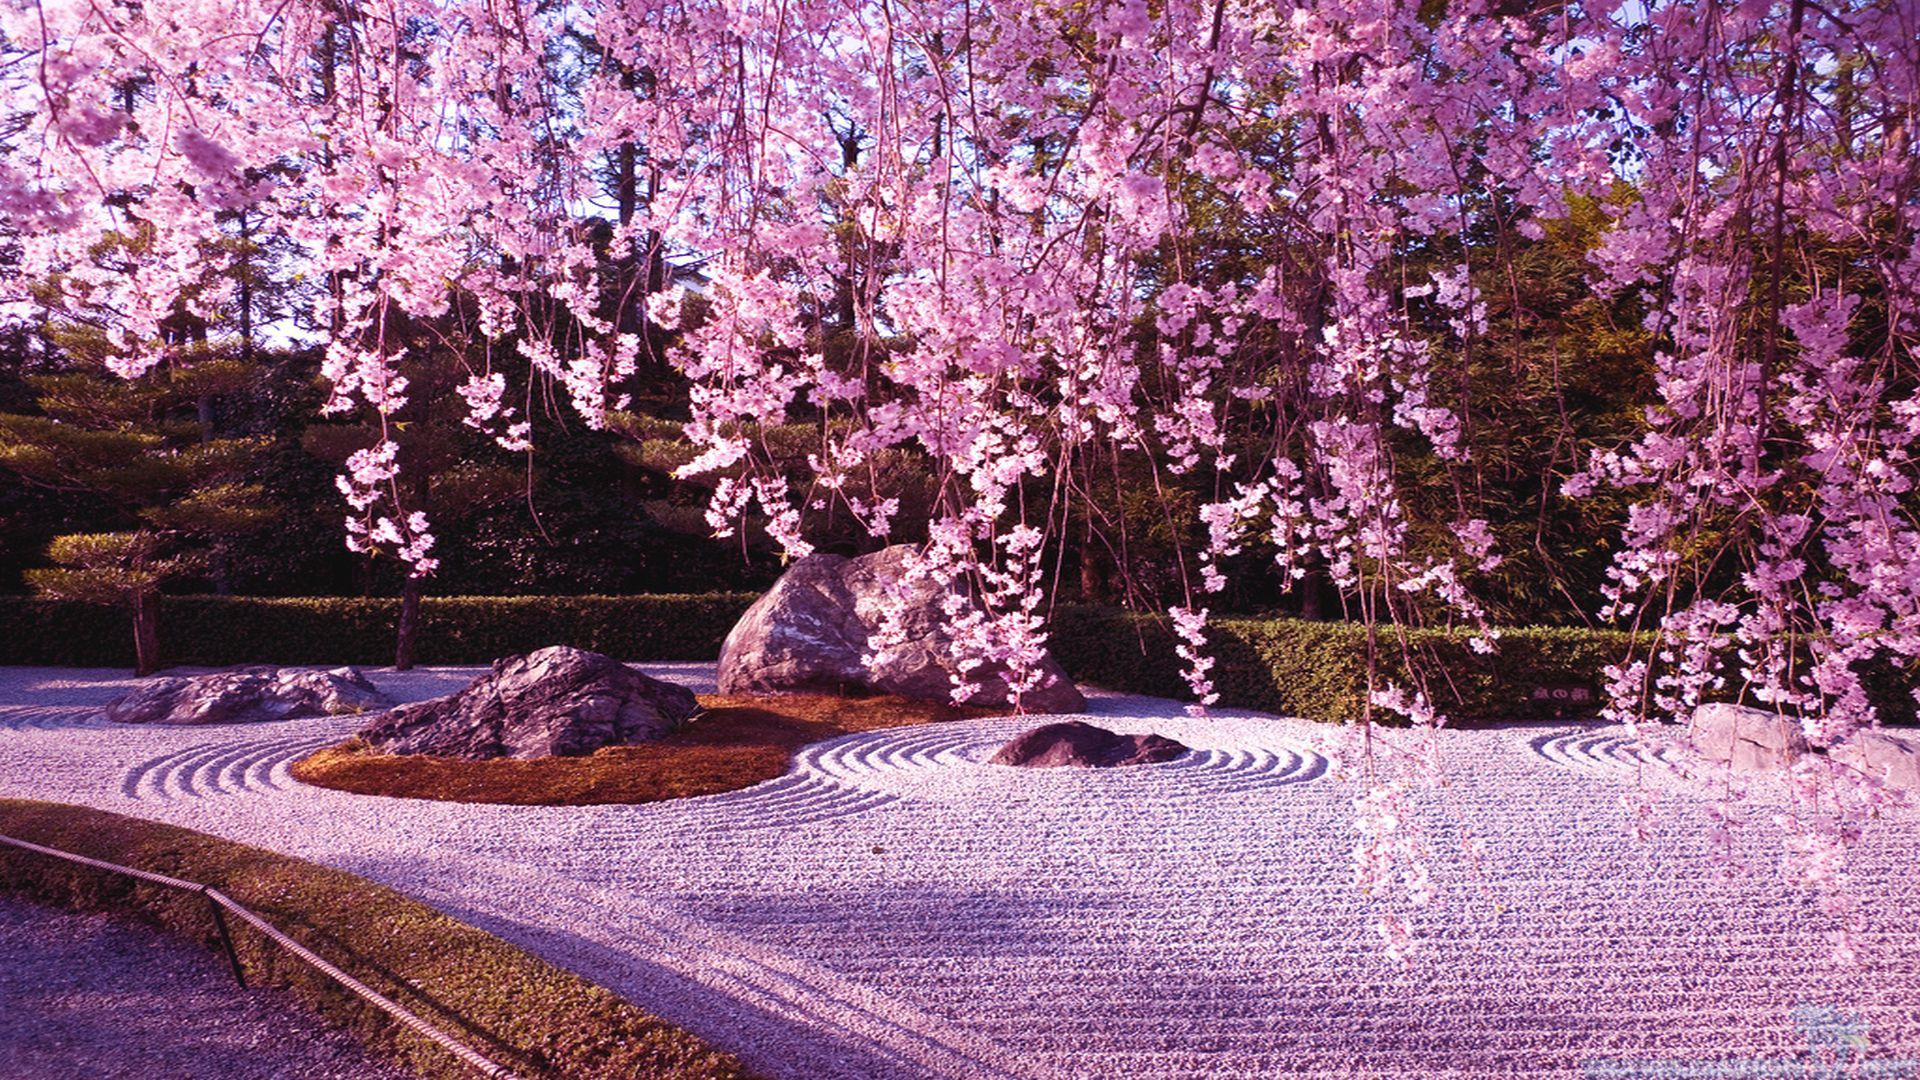 beauty of these sakura cherry trees blossoming in japan will leave you speechless